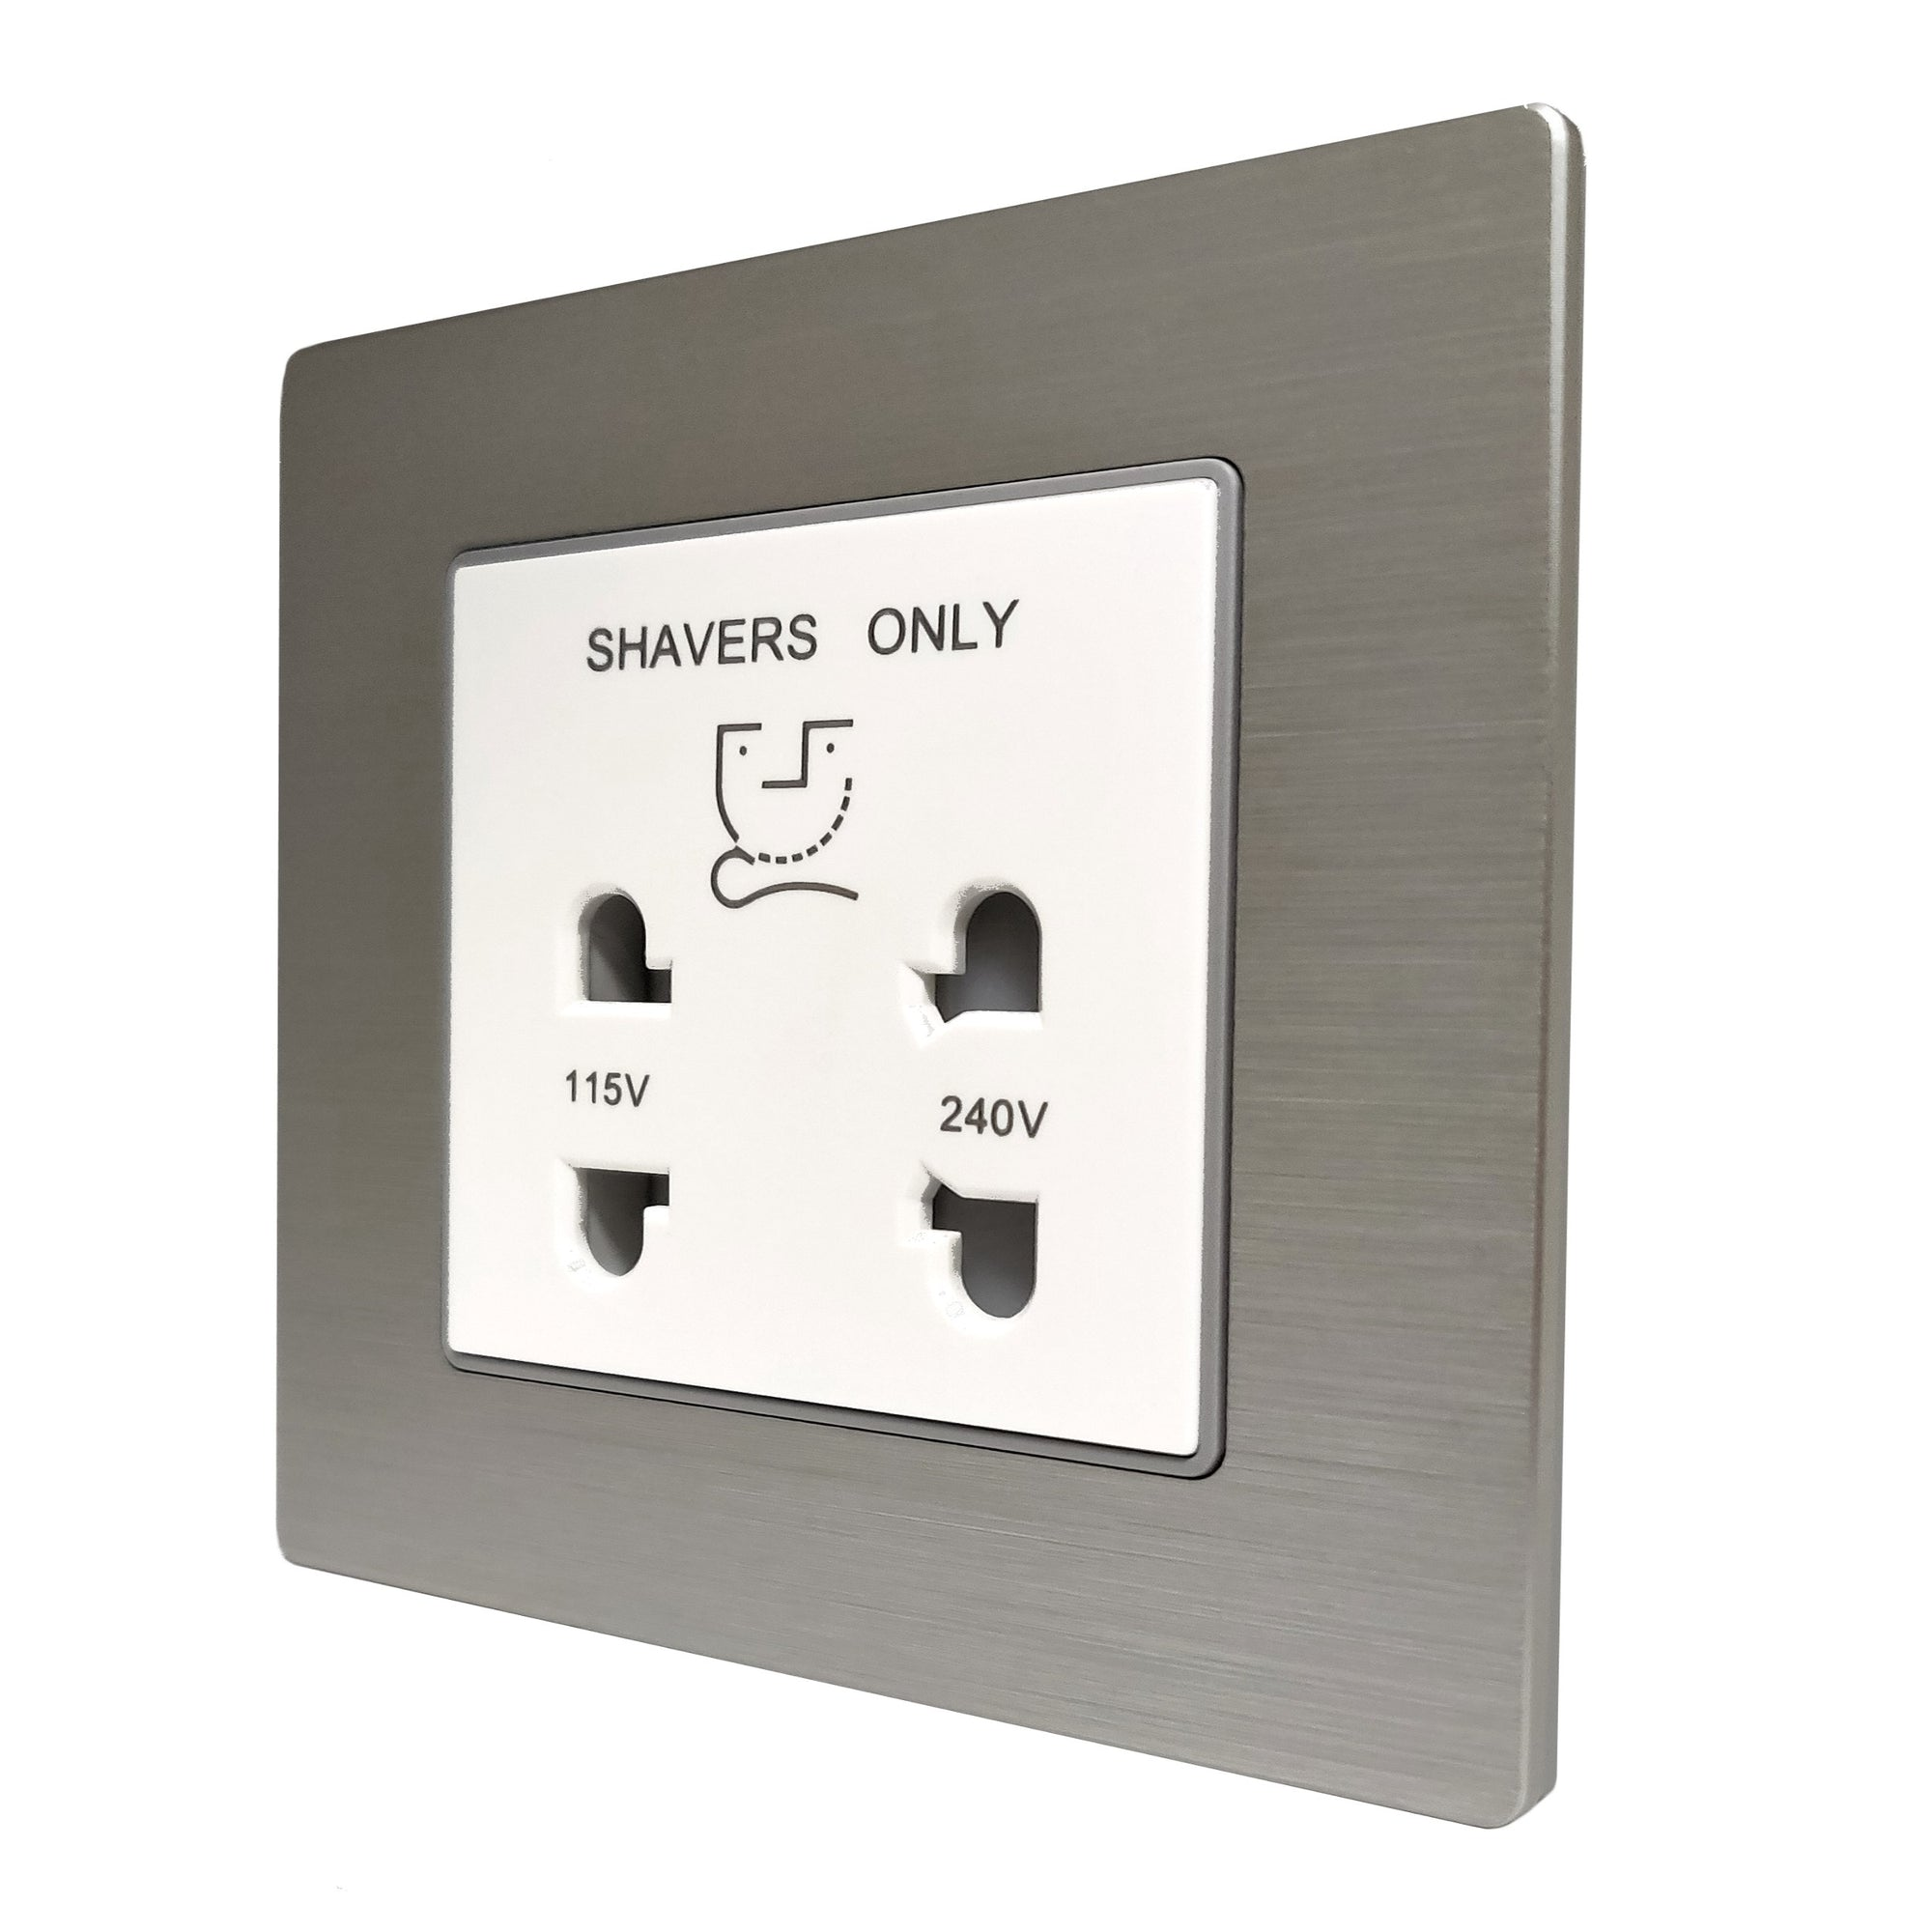 Single Shaver AC Wall Power Socket in Silver Brushed Alum Frame & White Centre